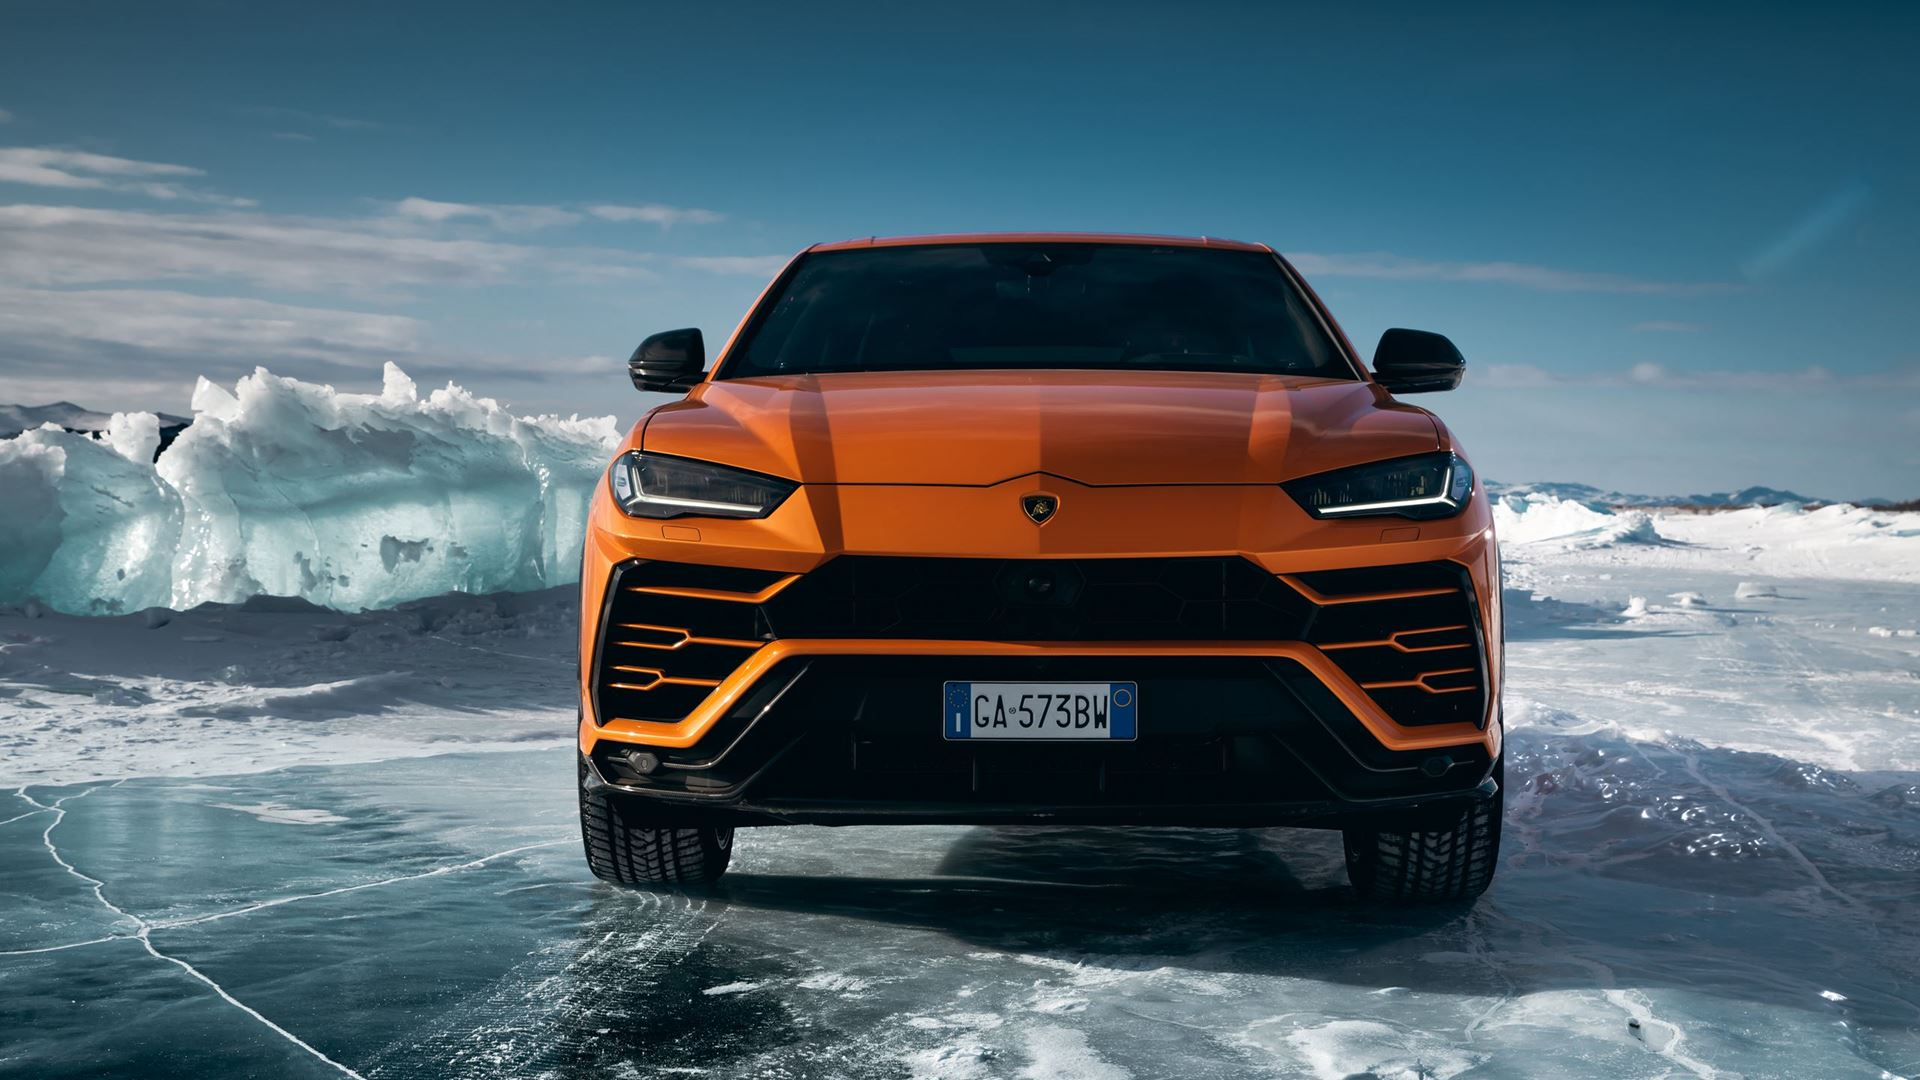 Lamborghini Urus: 6 driving modes to enjoy the Super SUV in 6 different ways - Image 2